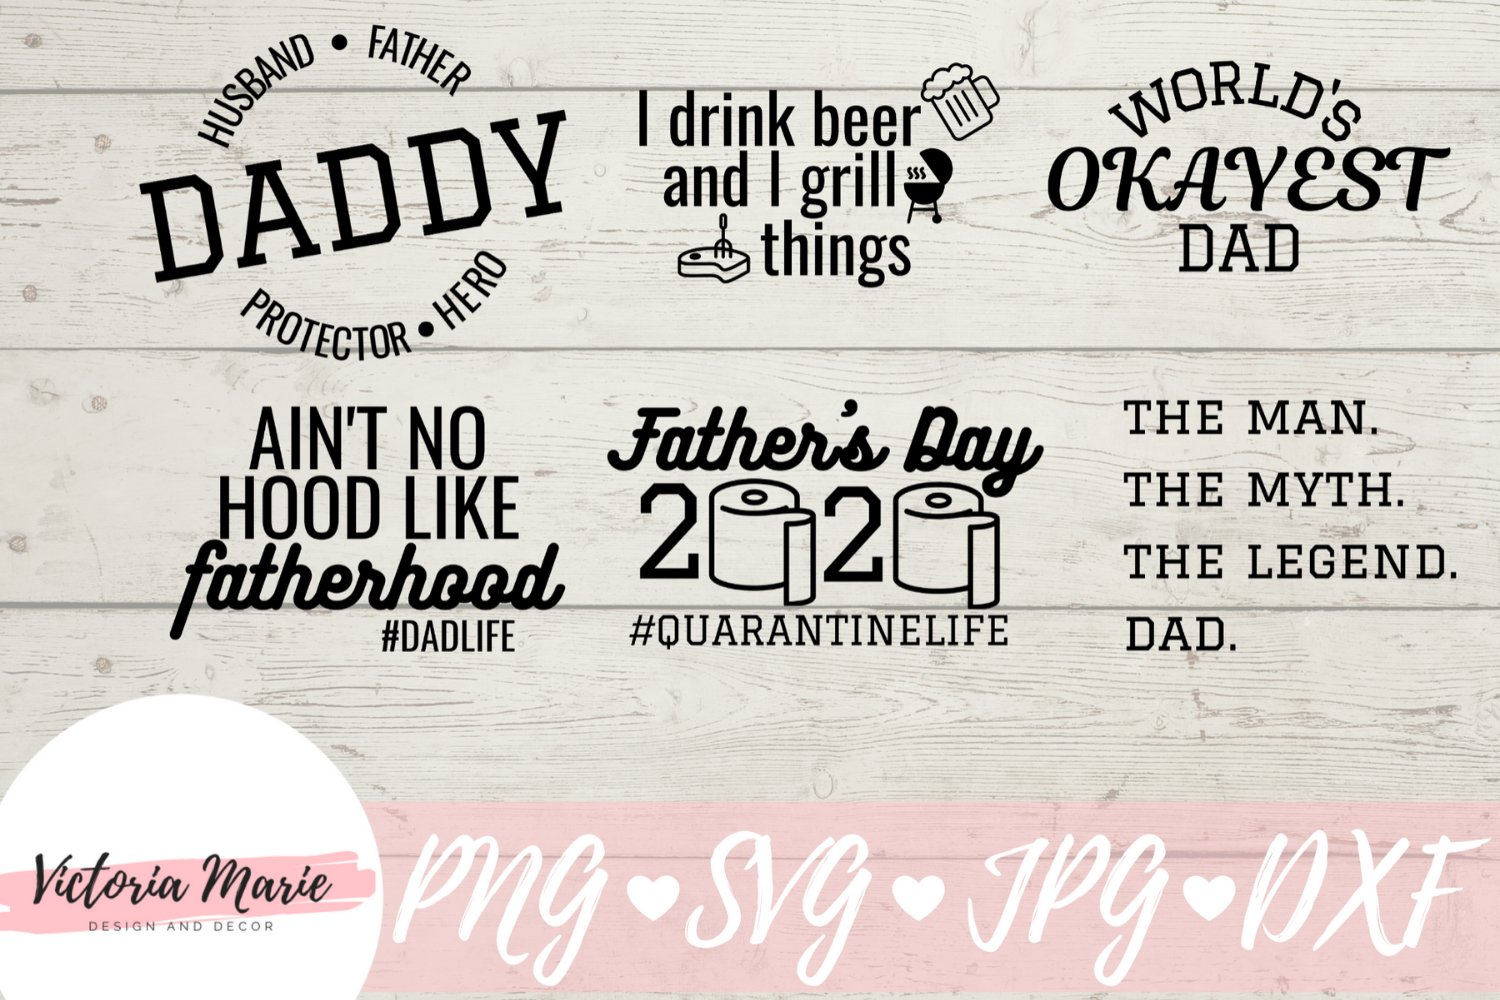 Free Full details and link to list of winners here father's day svg bundle. Fathers Day Svg Bundle Fathers Day 2020 Svg Dad Svg 655047 Cut Files Design Bundles SVG, PNG, EPS, DXF File